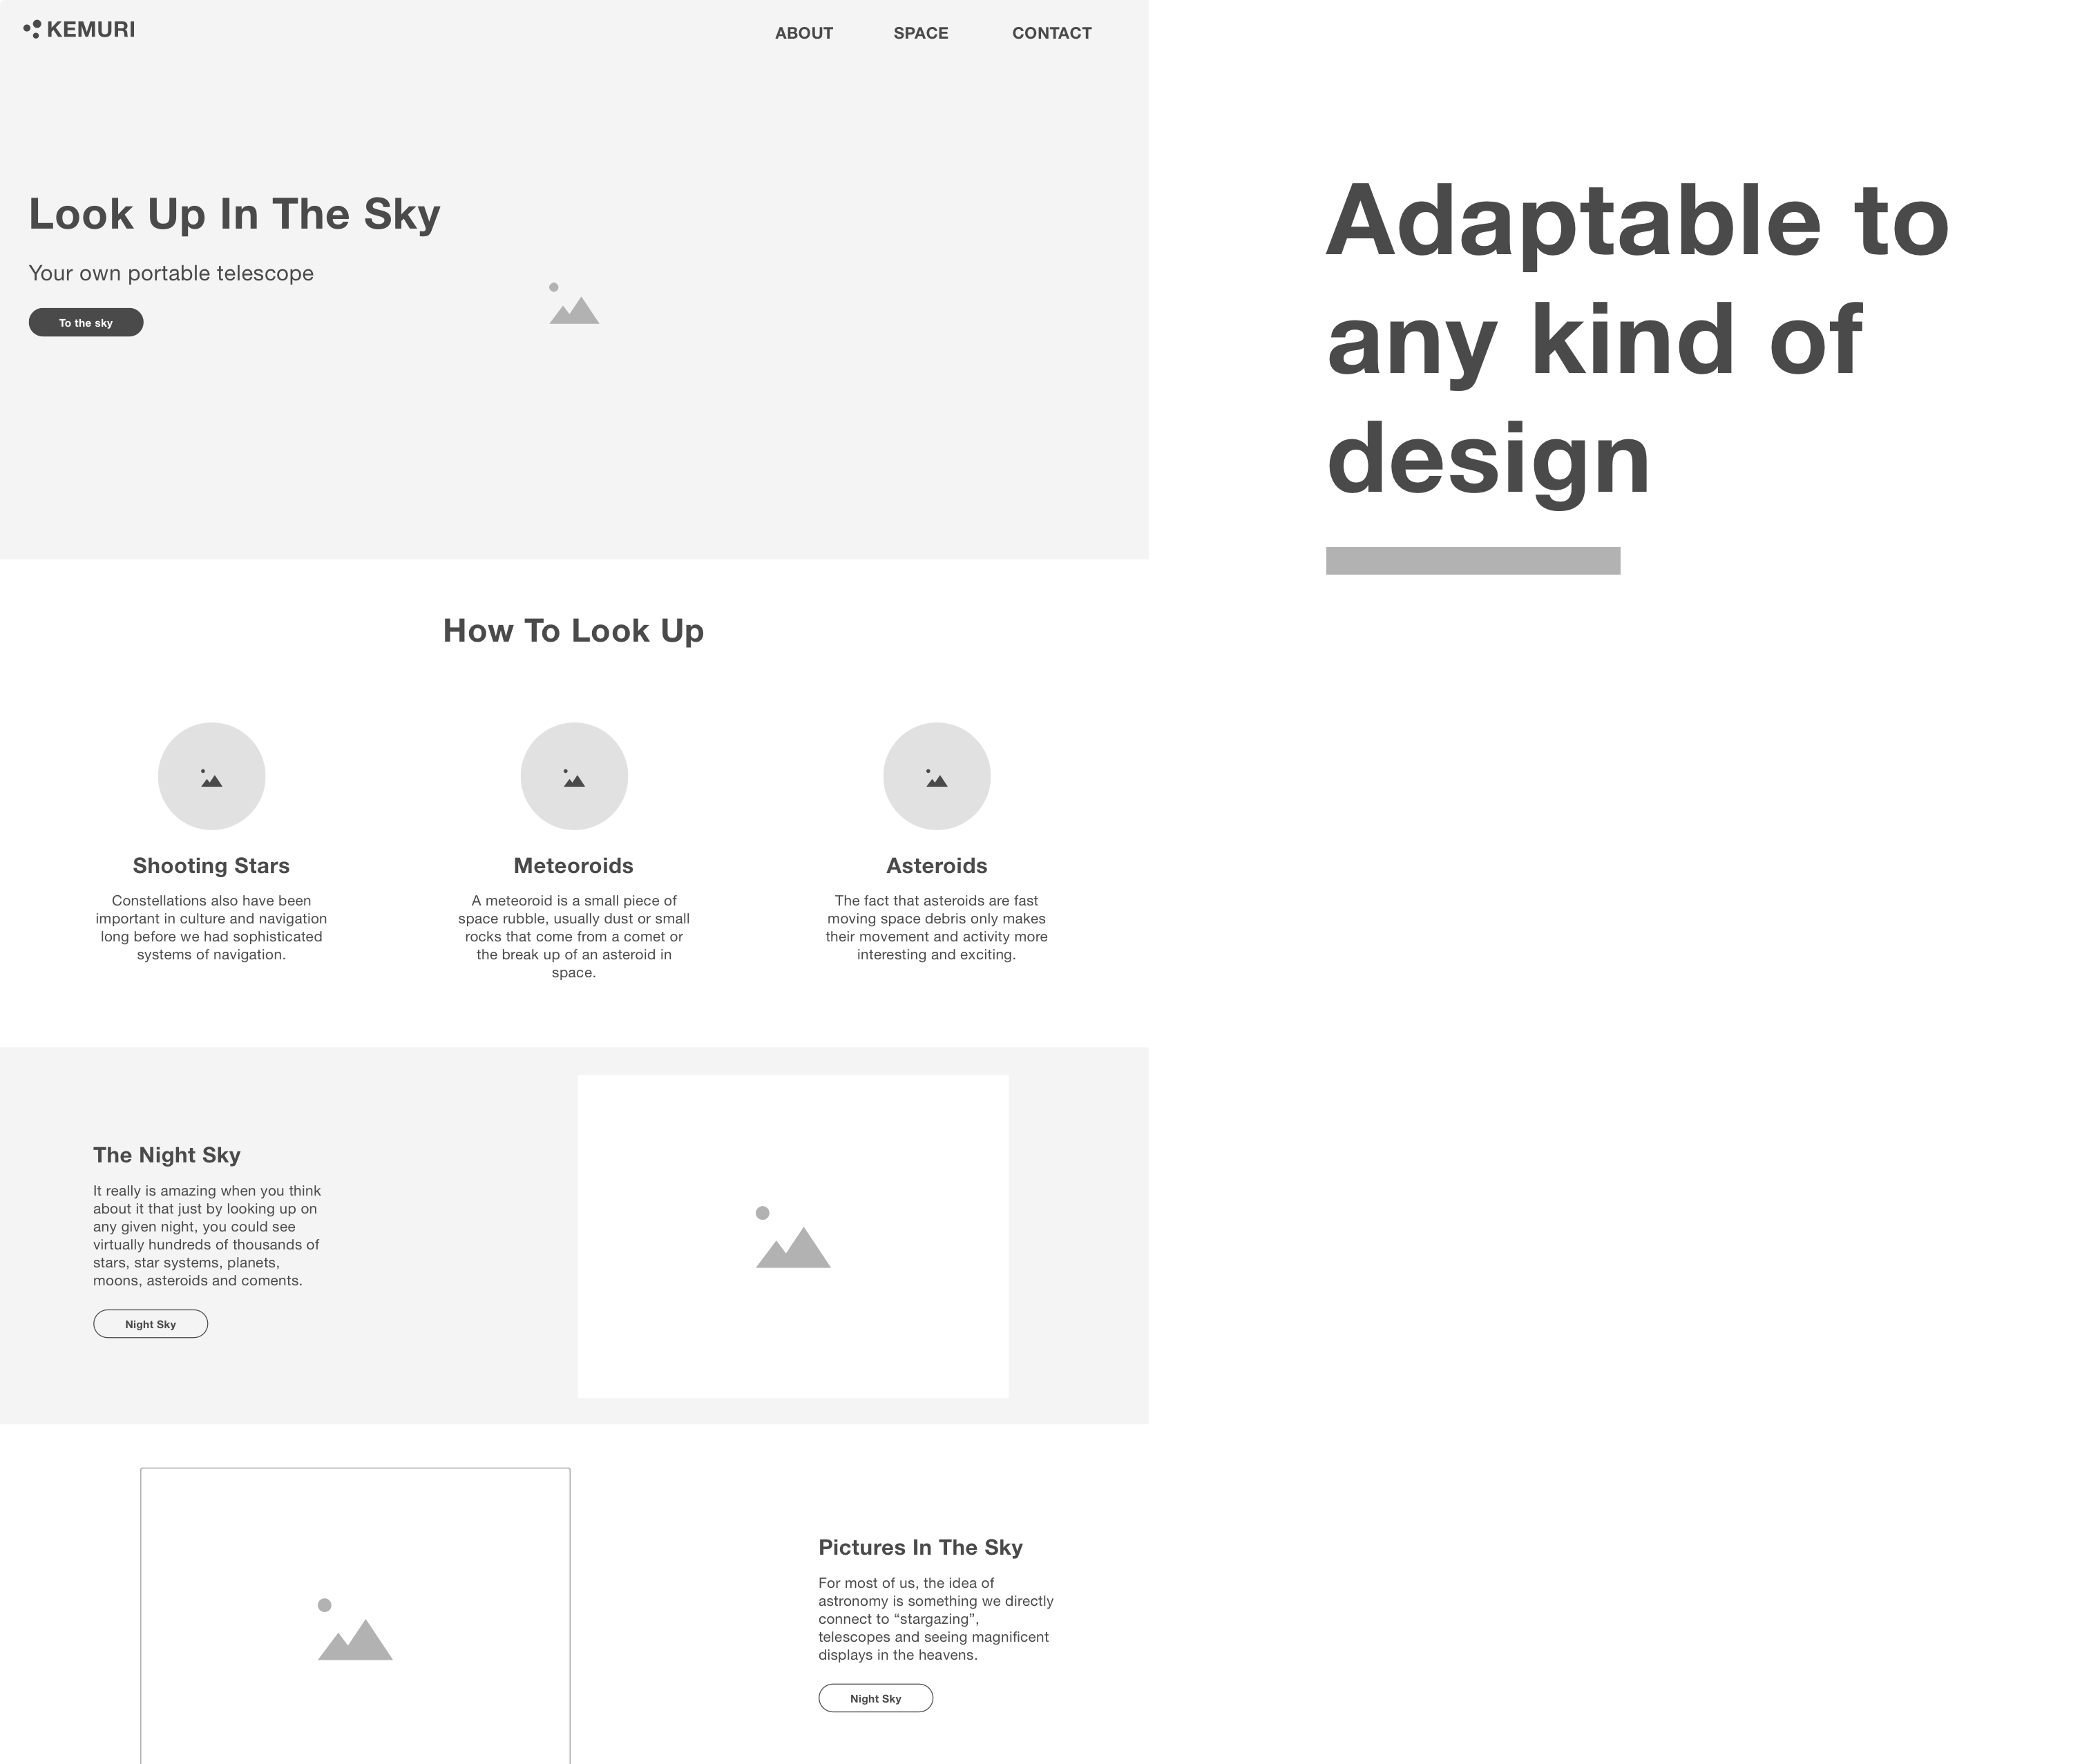 Landing page created with the kemuri wireframe kit